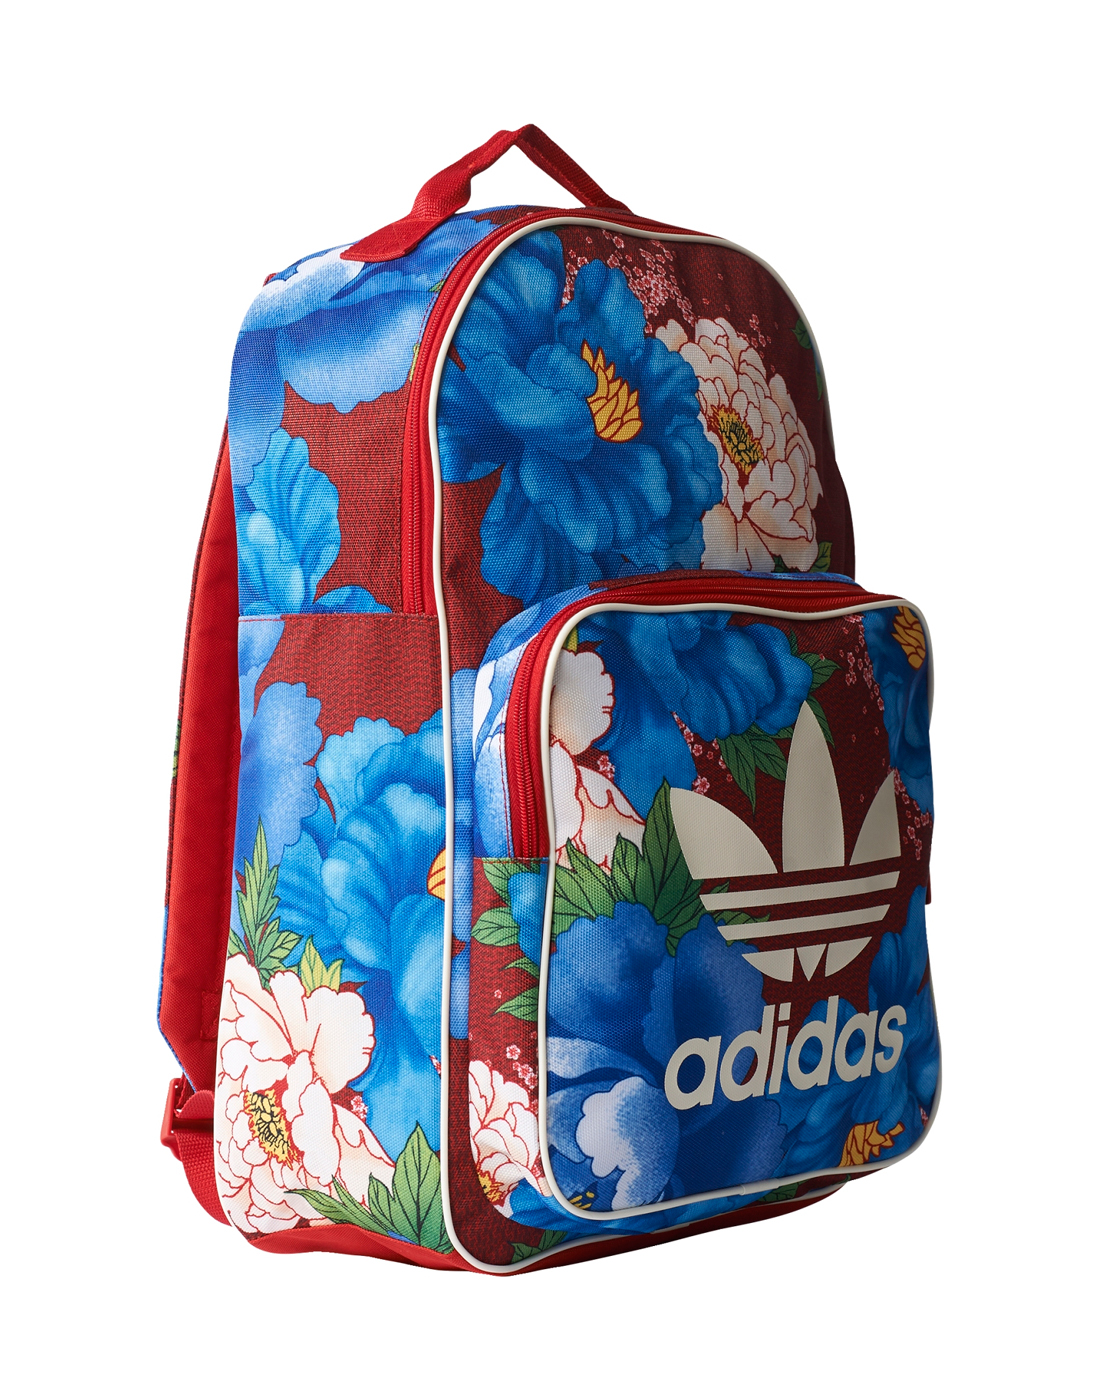 Originals Floral Backpack · Originals Floral Backpack · Originals Floral Backpack ...